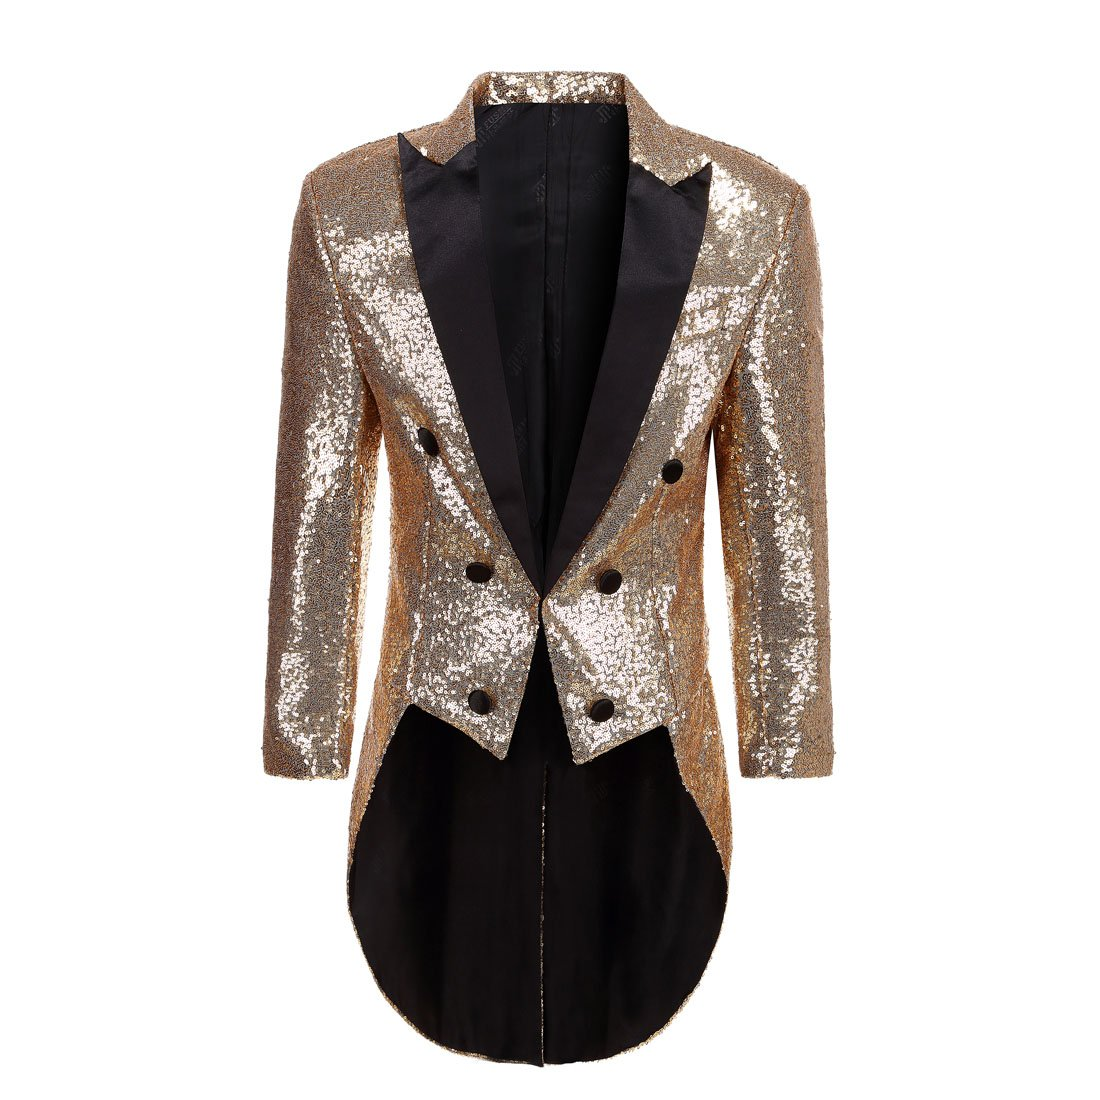 PYJTRL Mens Fashion Colorful Sequins Tailcoat Tuxedo (Gold, L/42R)